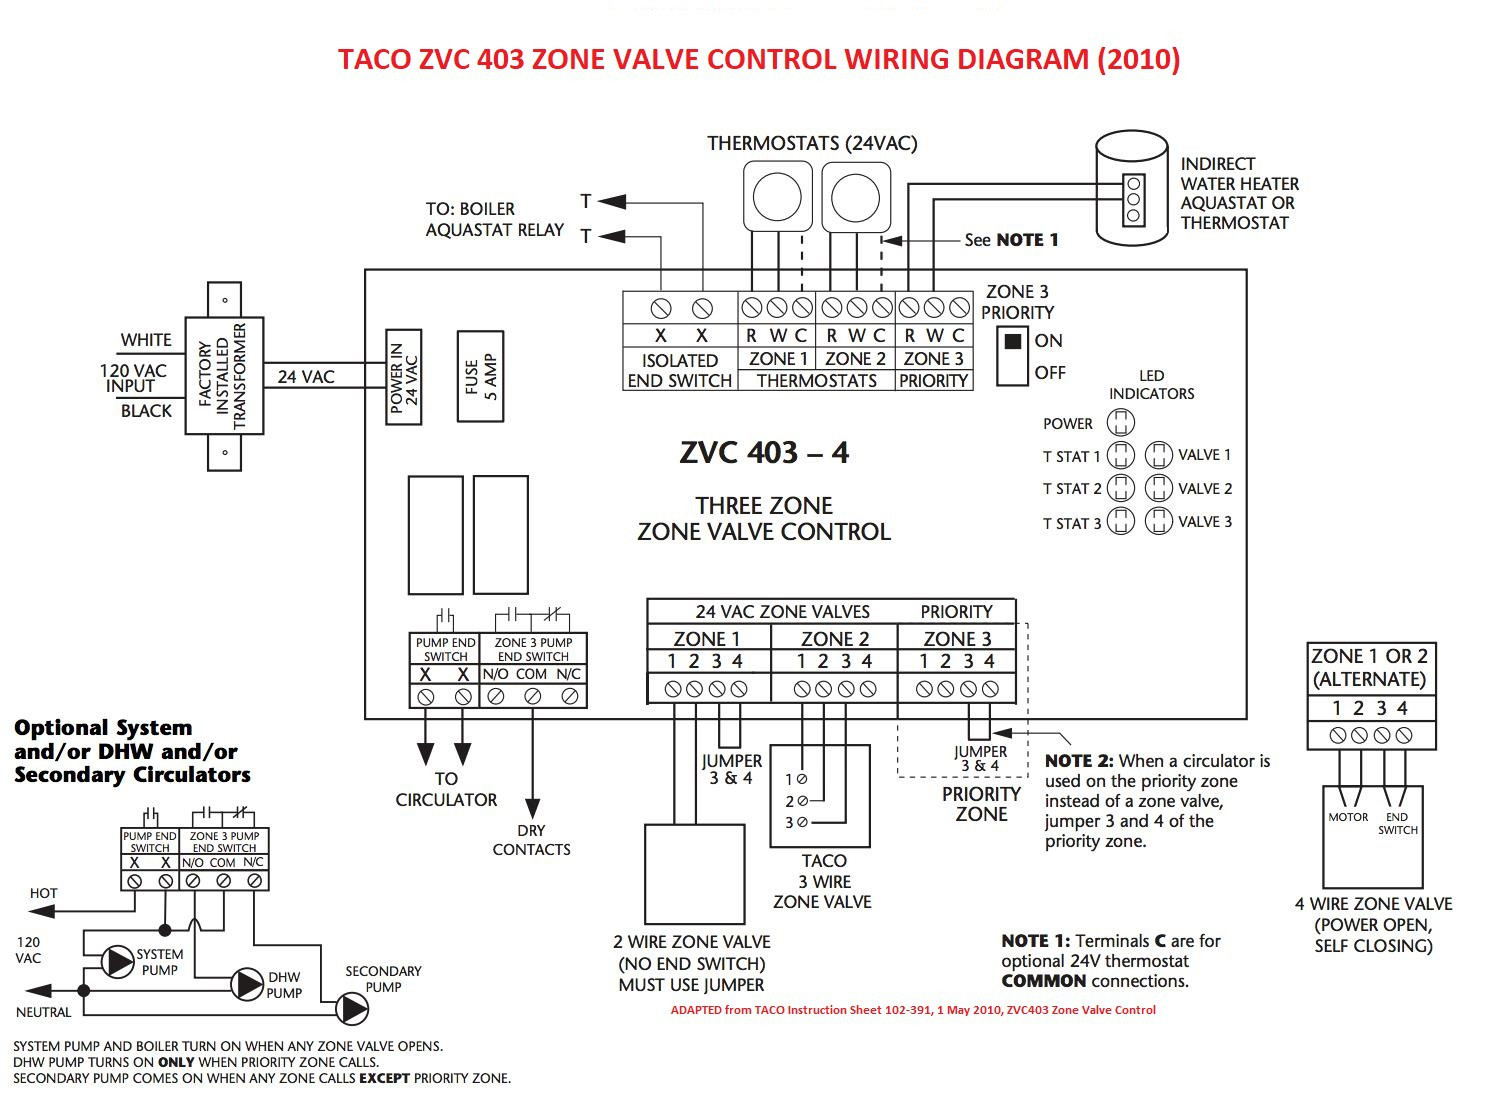 taco sr502 4 wiring diagram Download-Taco Zone Valve Wiring Diagram Elegant Addition Taco Sr503 Wiring Diagram 4 Moreover Taco Pump Wiring 1-s